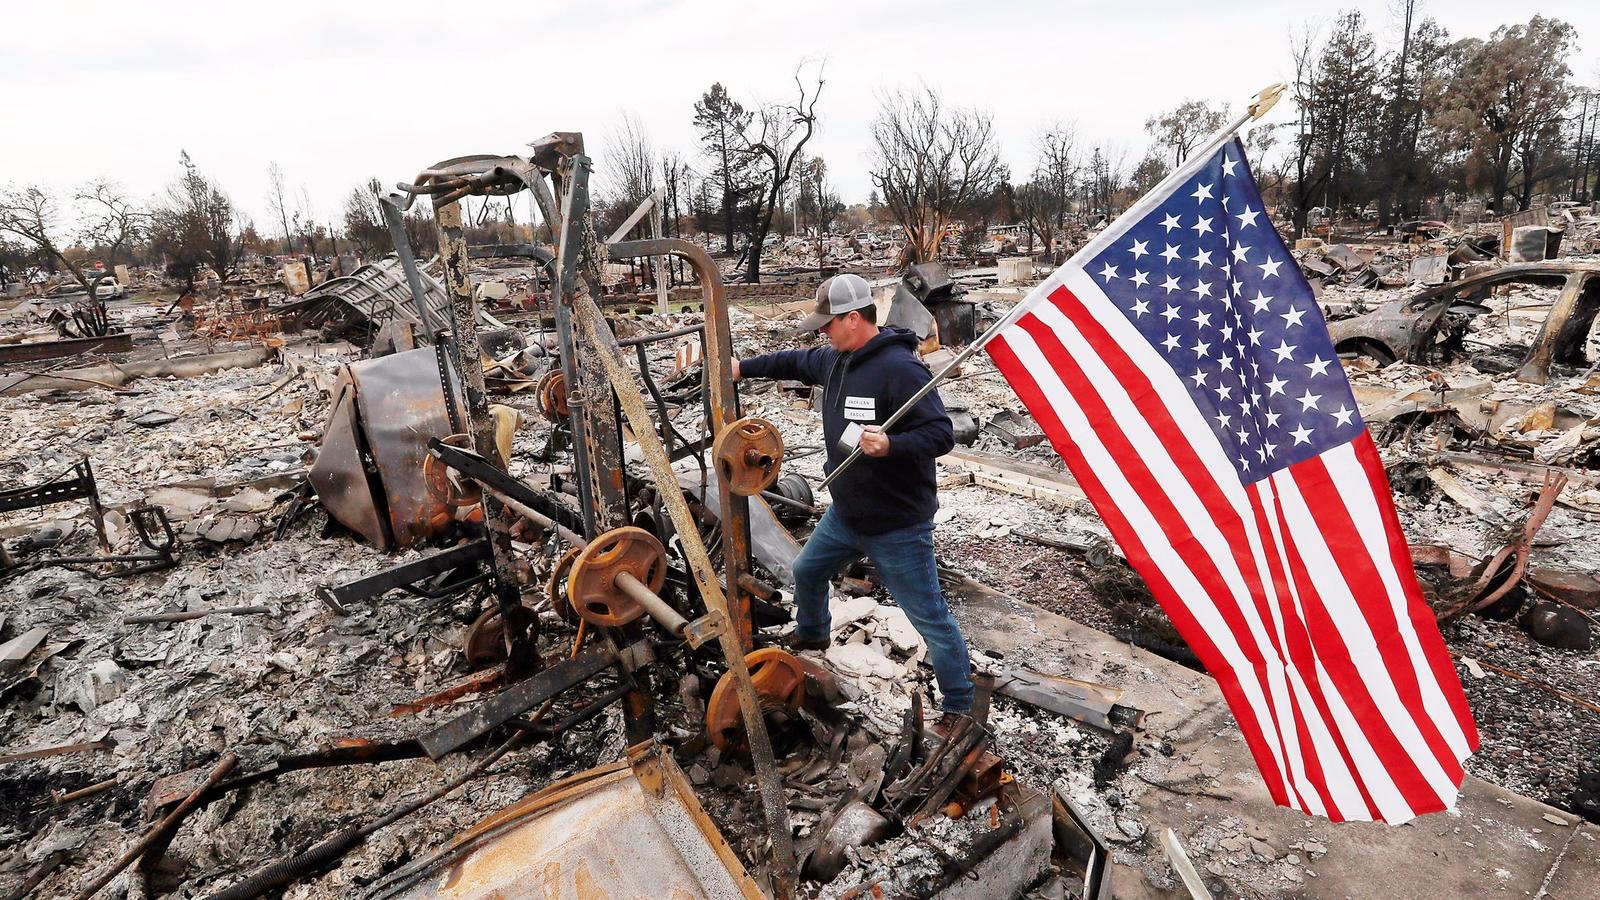 Jason Miller, 45, plants an American flag on the charred remains of his house in Coffey Park. He had lived in the Santa Rosa neighborhood for 23 years. (Luis Sinco / Los Angeles Times)